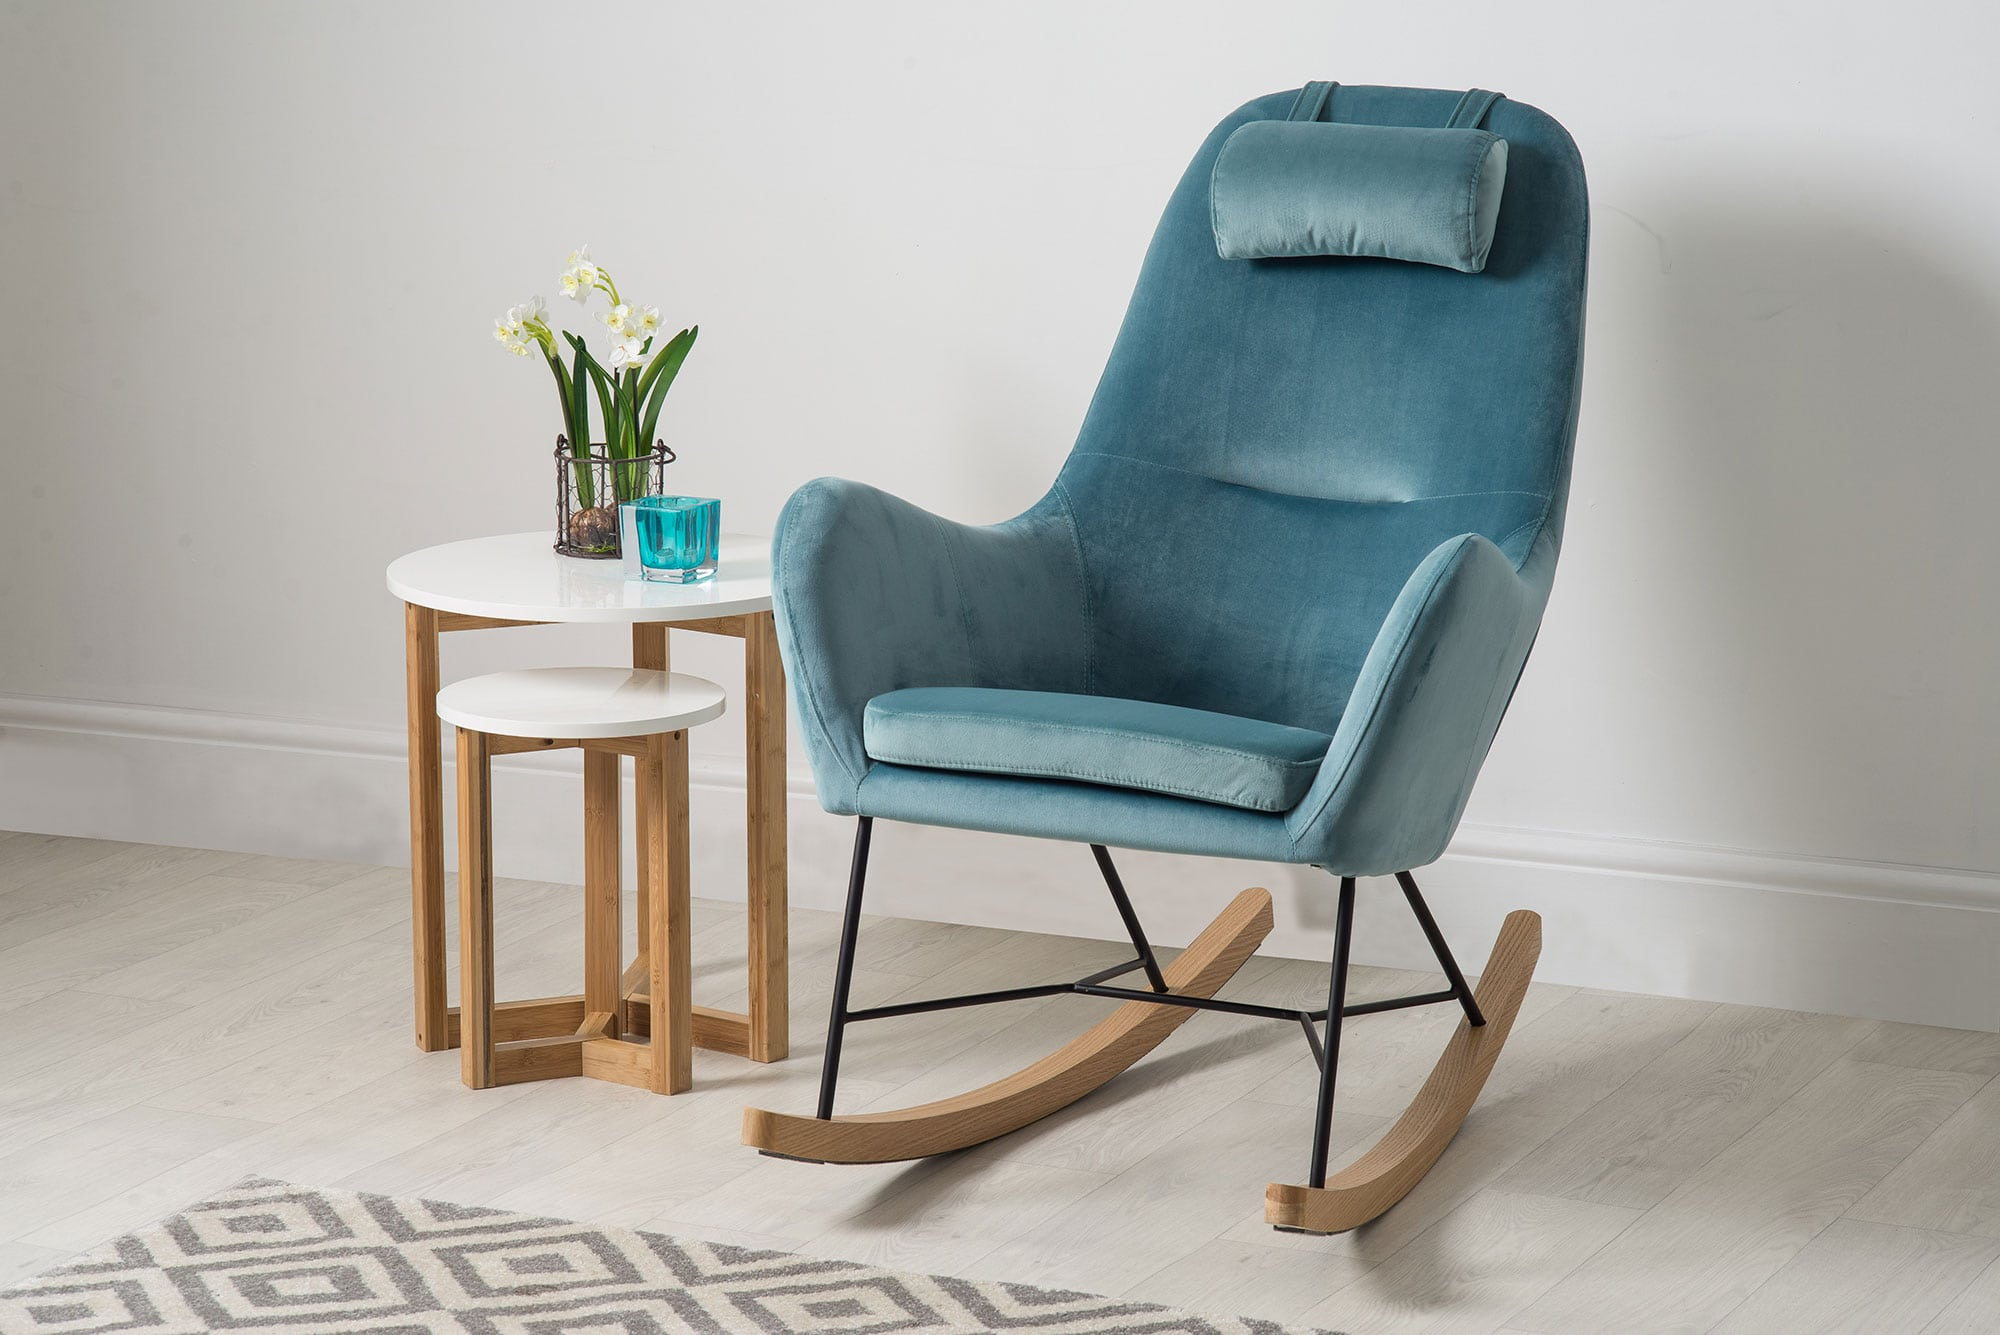 accent rocking chairs steel chair for tent house barton scandinavian bella casa london